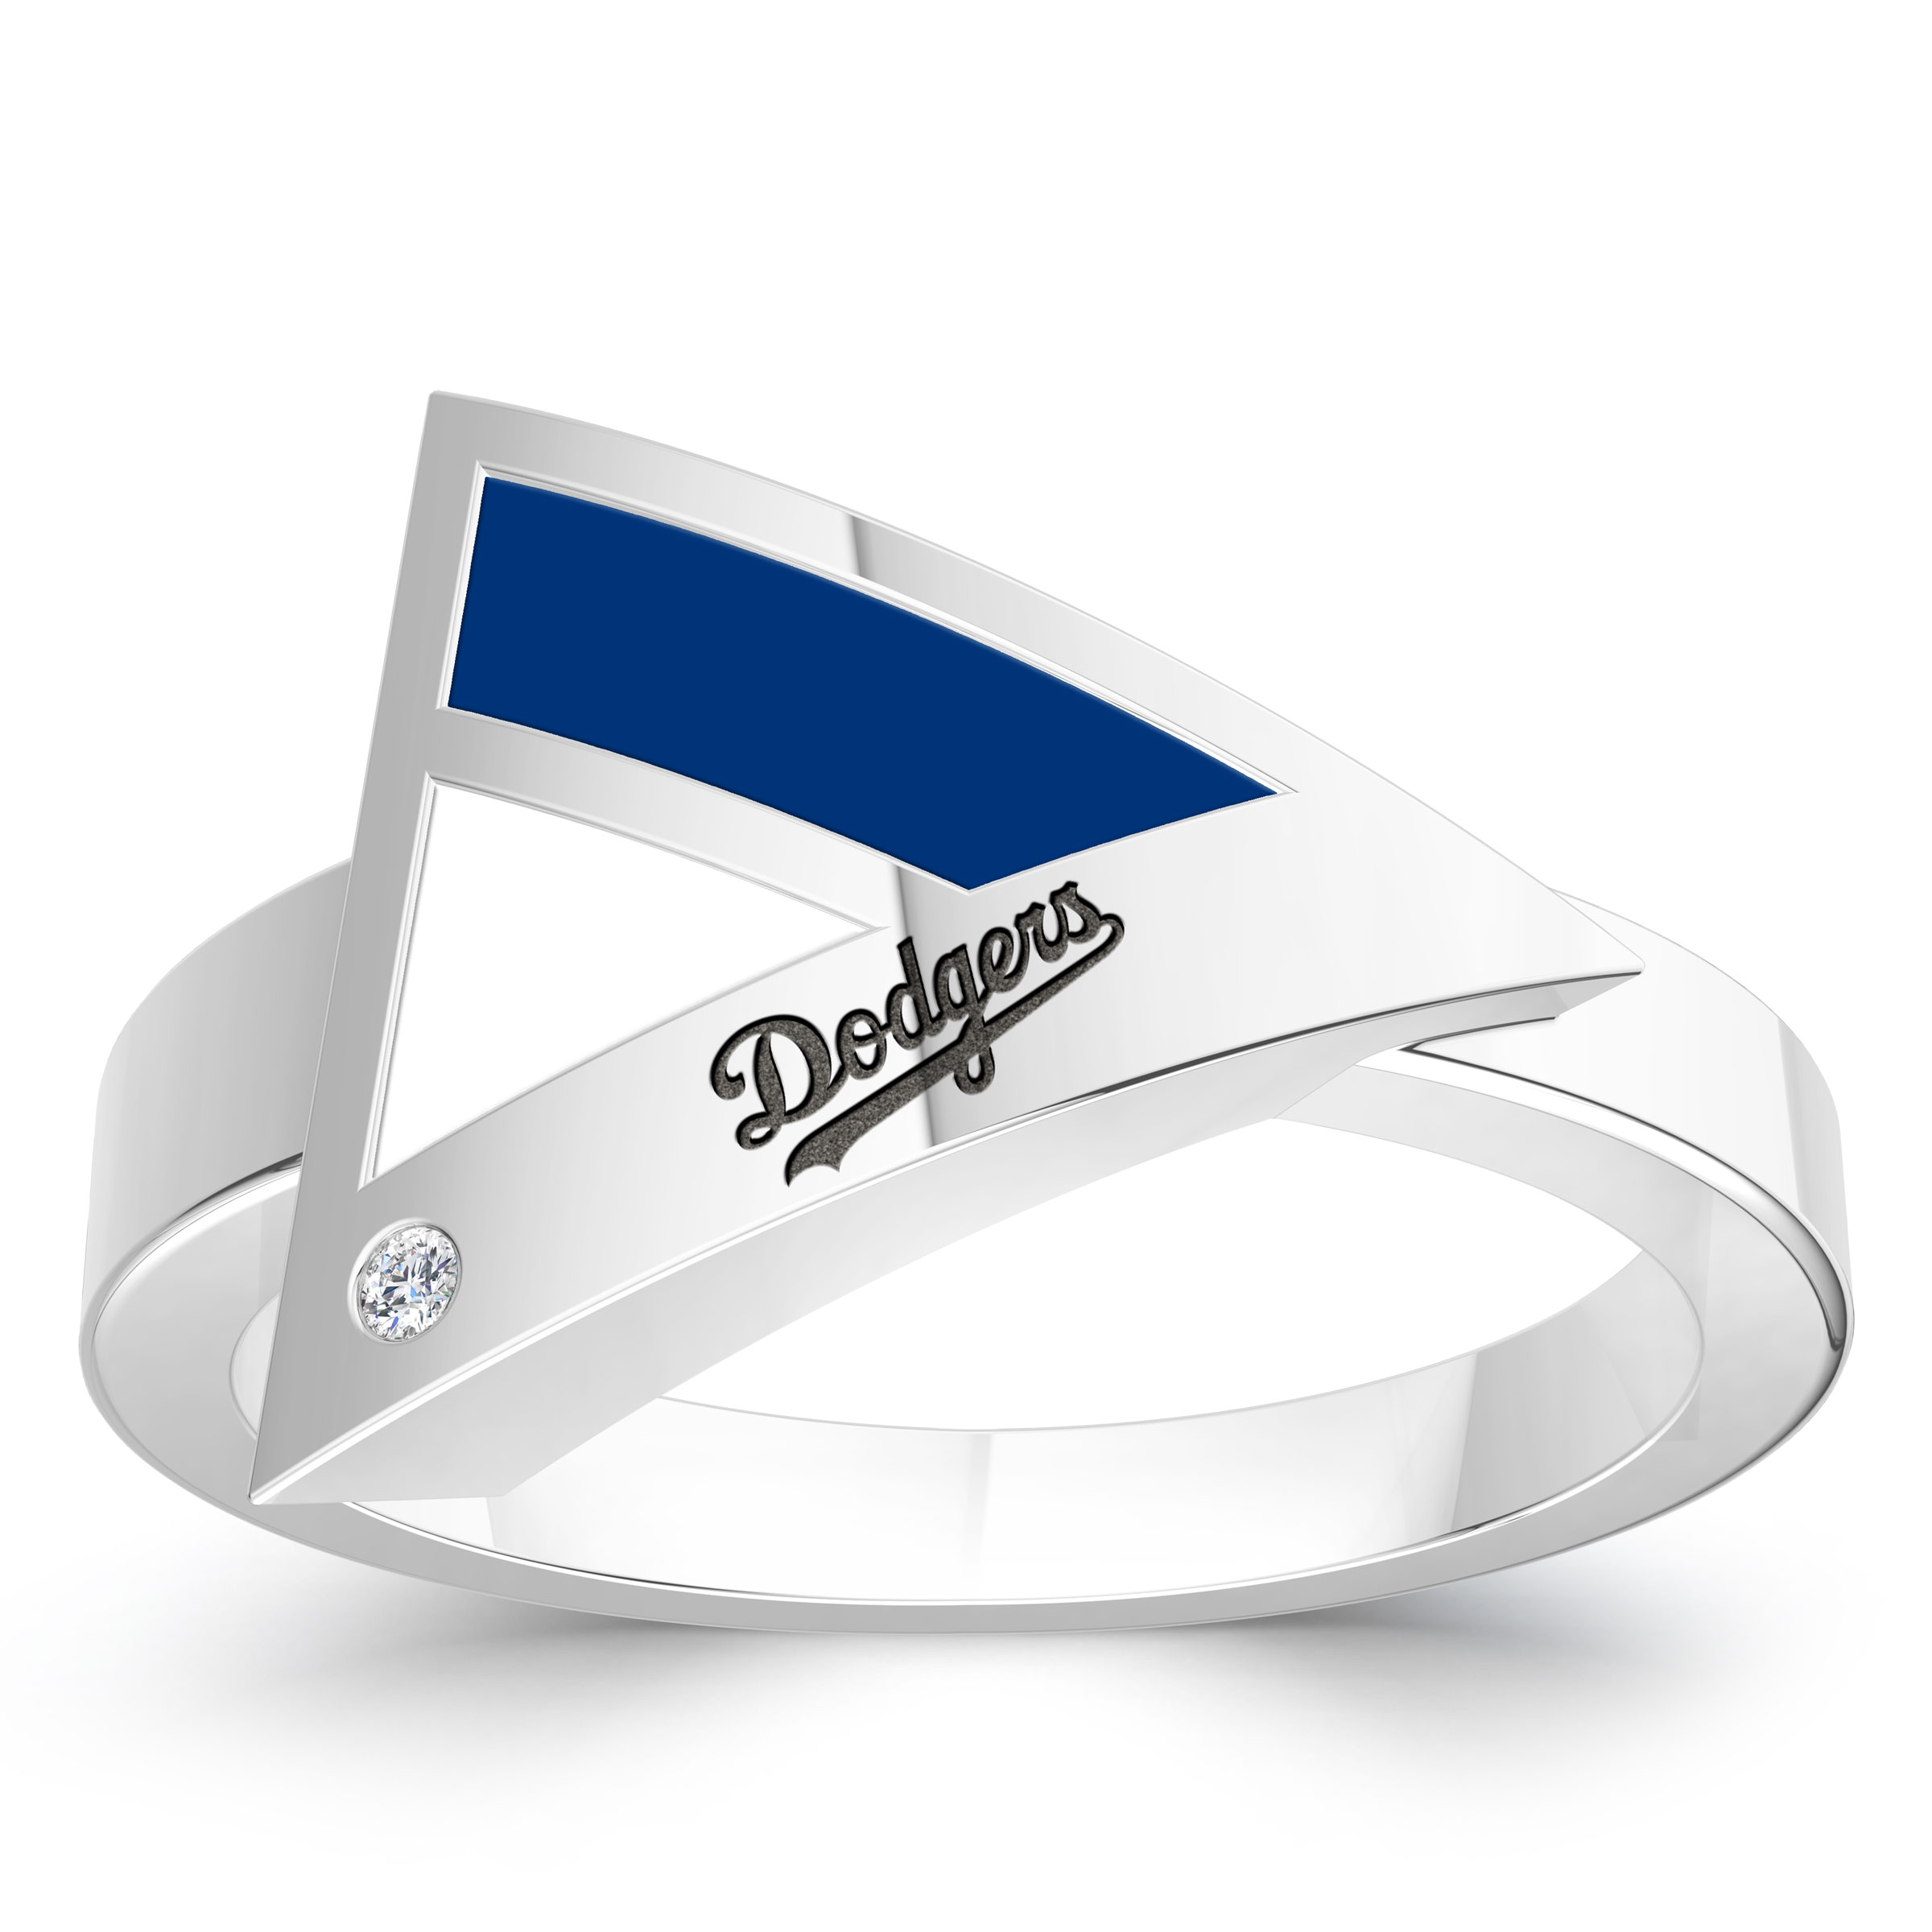 Los Angeles Dodgers Engraved Sterling Silver Diamond Geometric